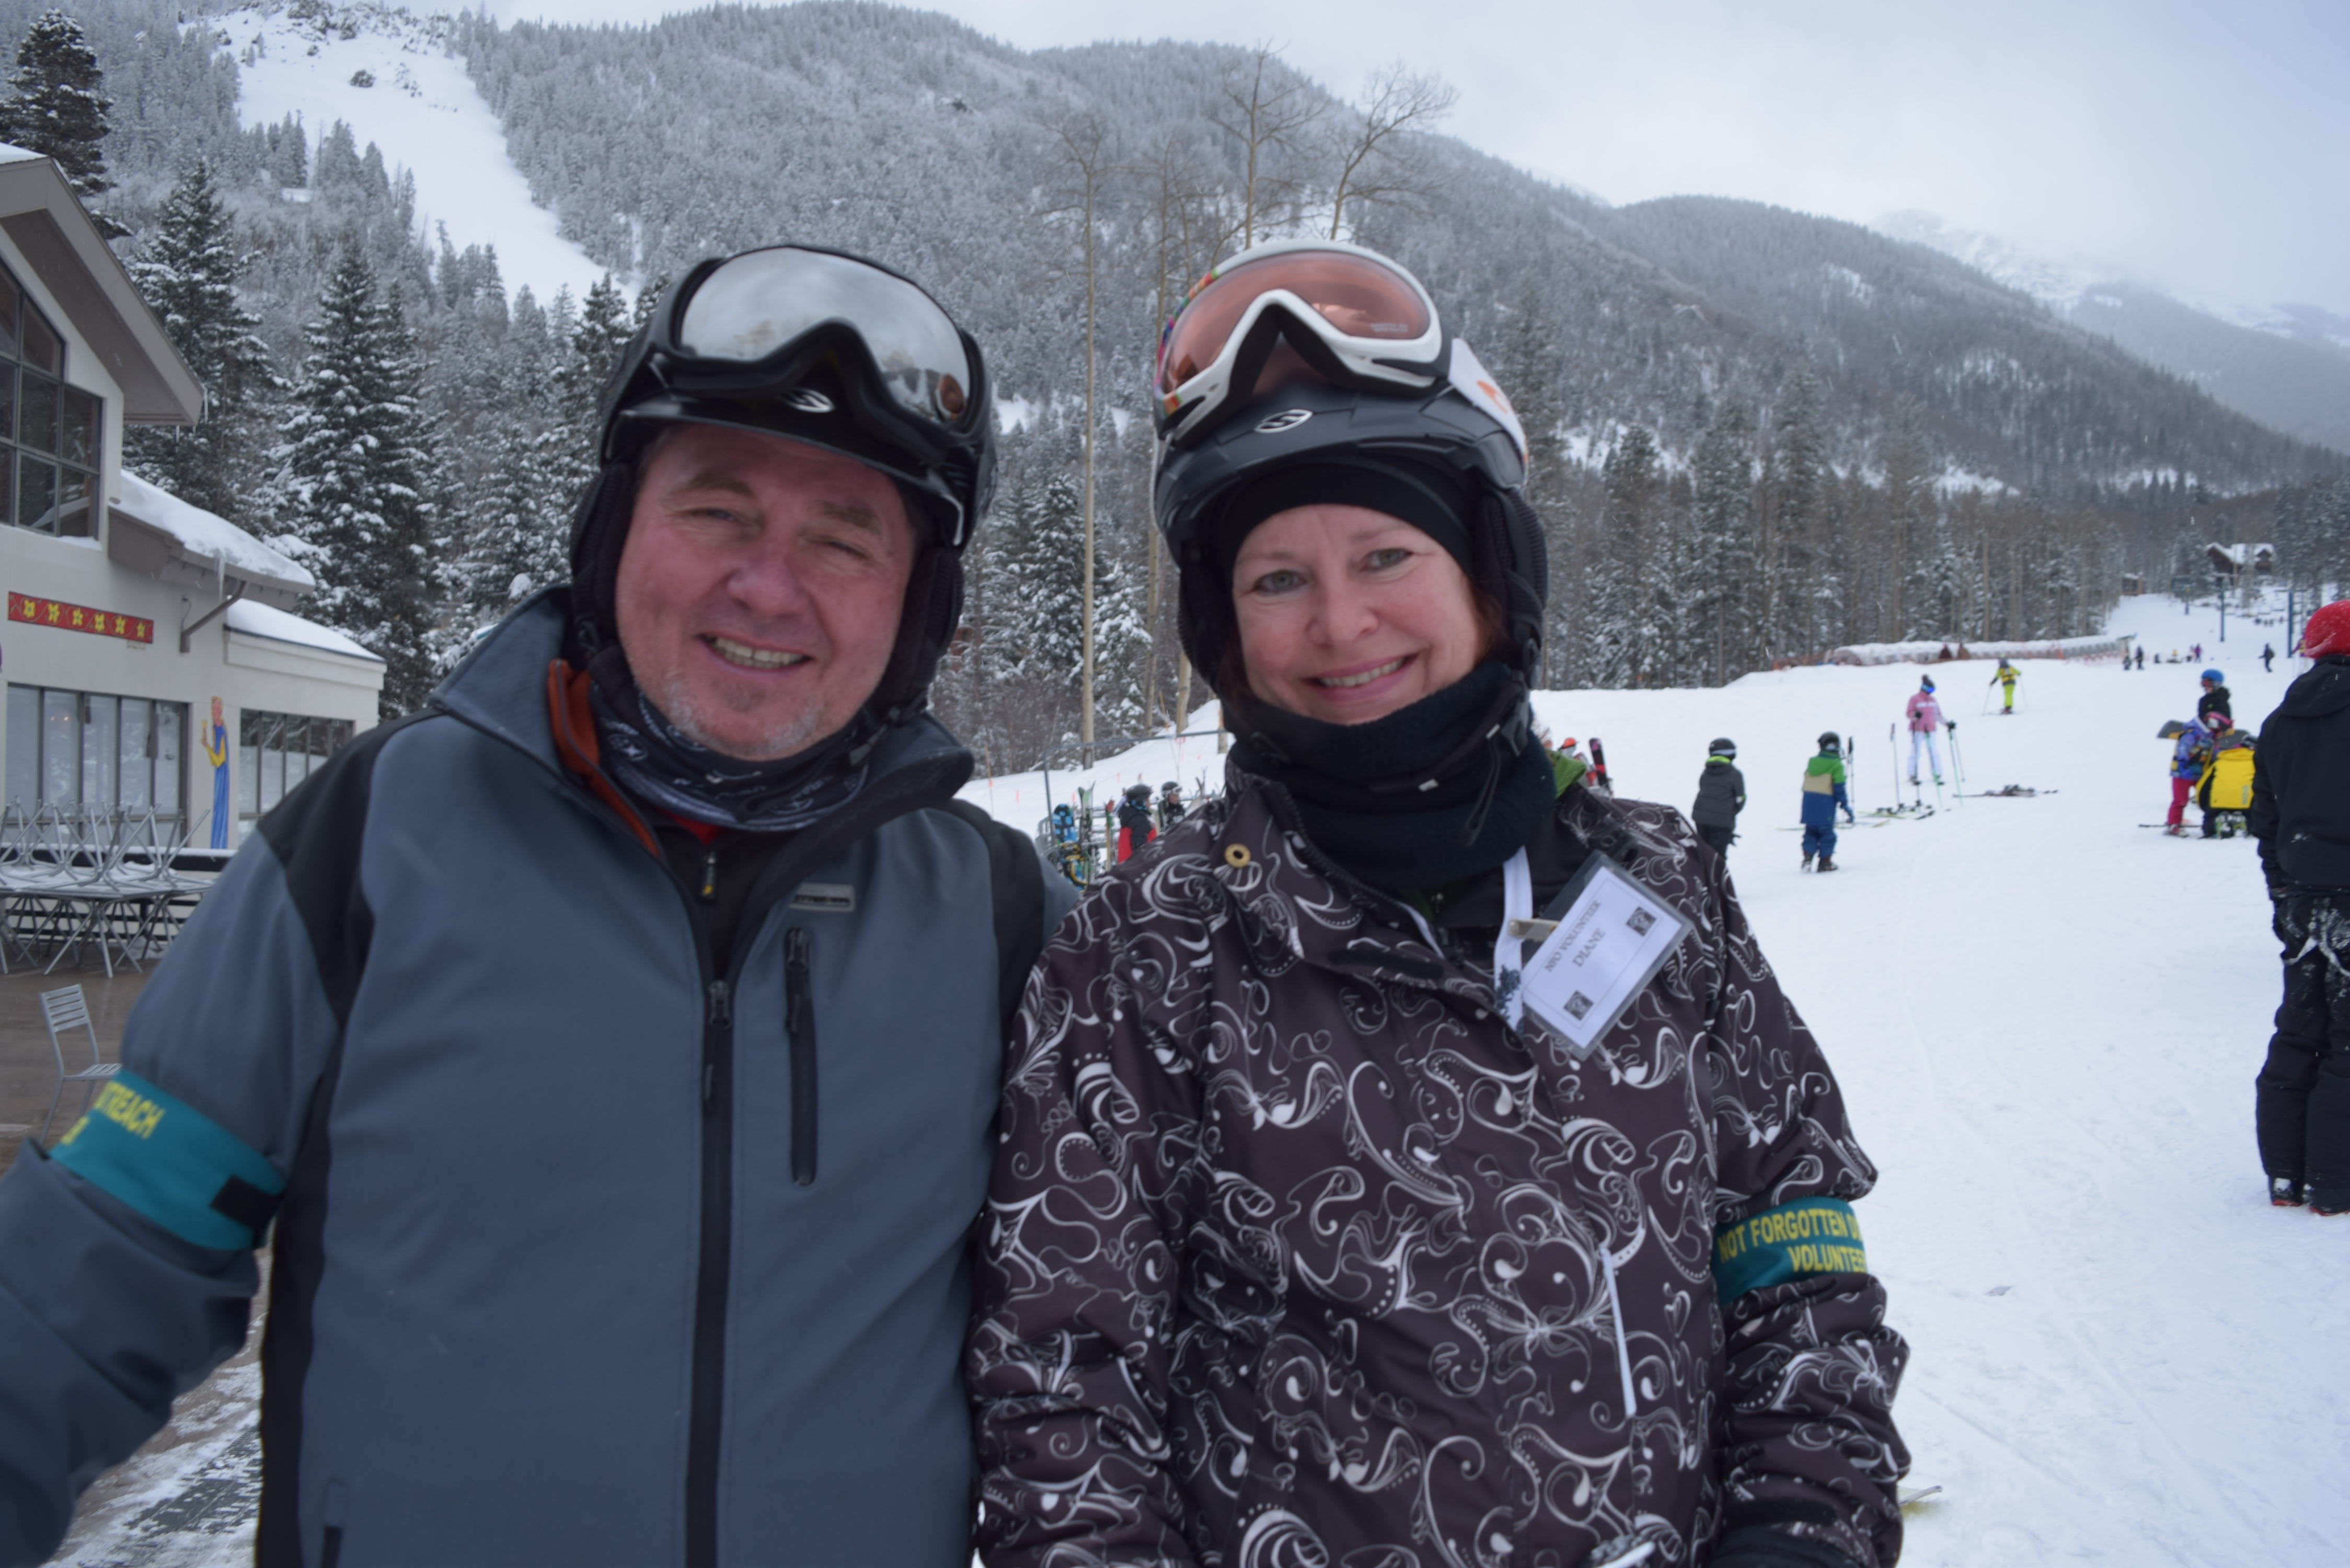 Two skiers, a man and a woman, embrace side-by-side under overcast skies. Lodge, wintry mountains, and skiers in background.